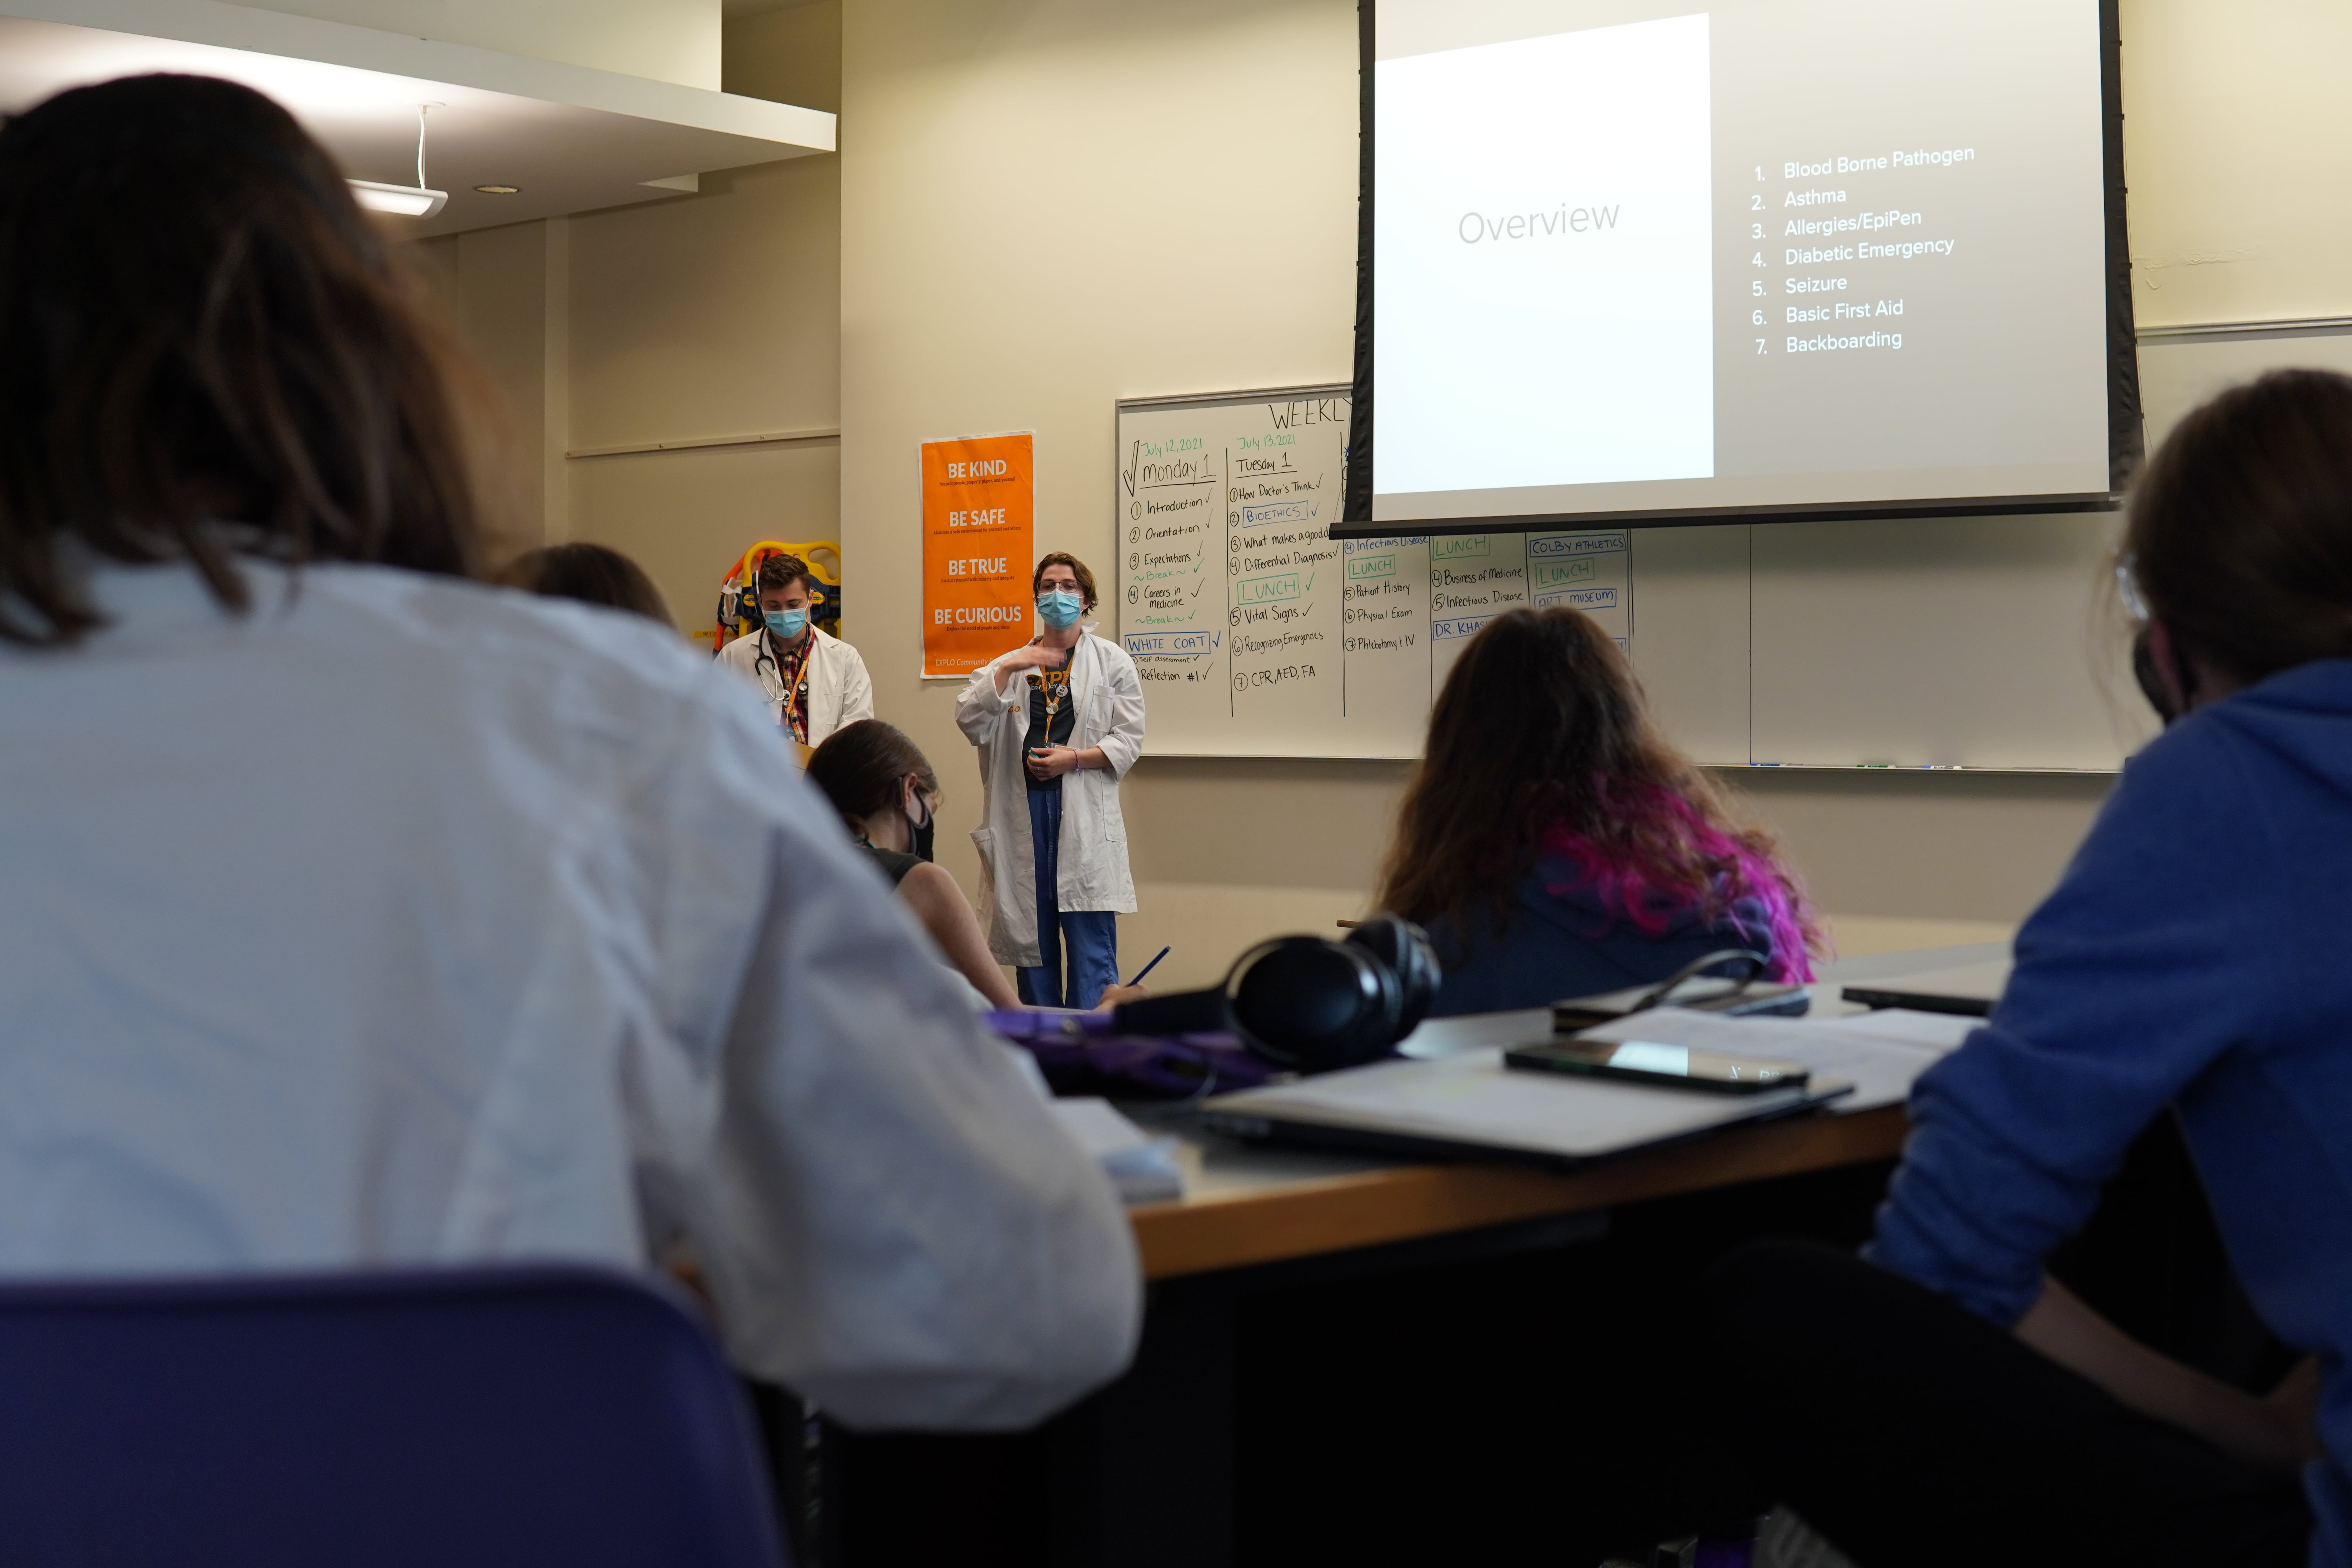 Teaching fellow and Instructor stand at the front of a lecture hall as students listen to their presentation.